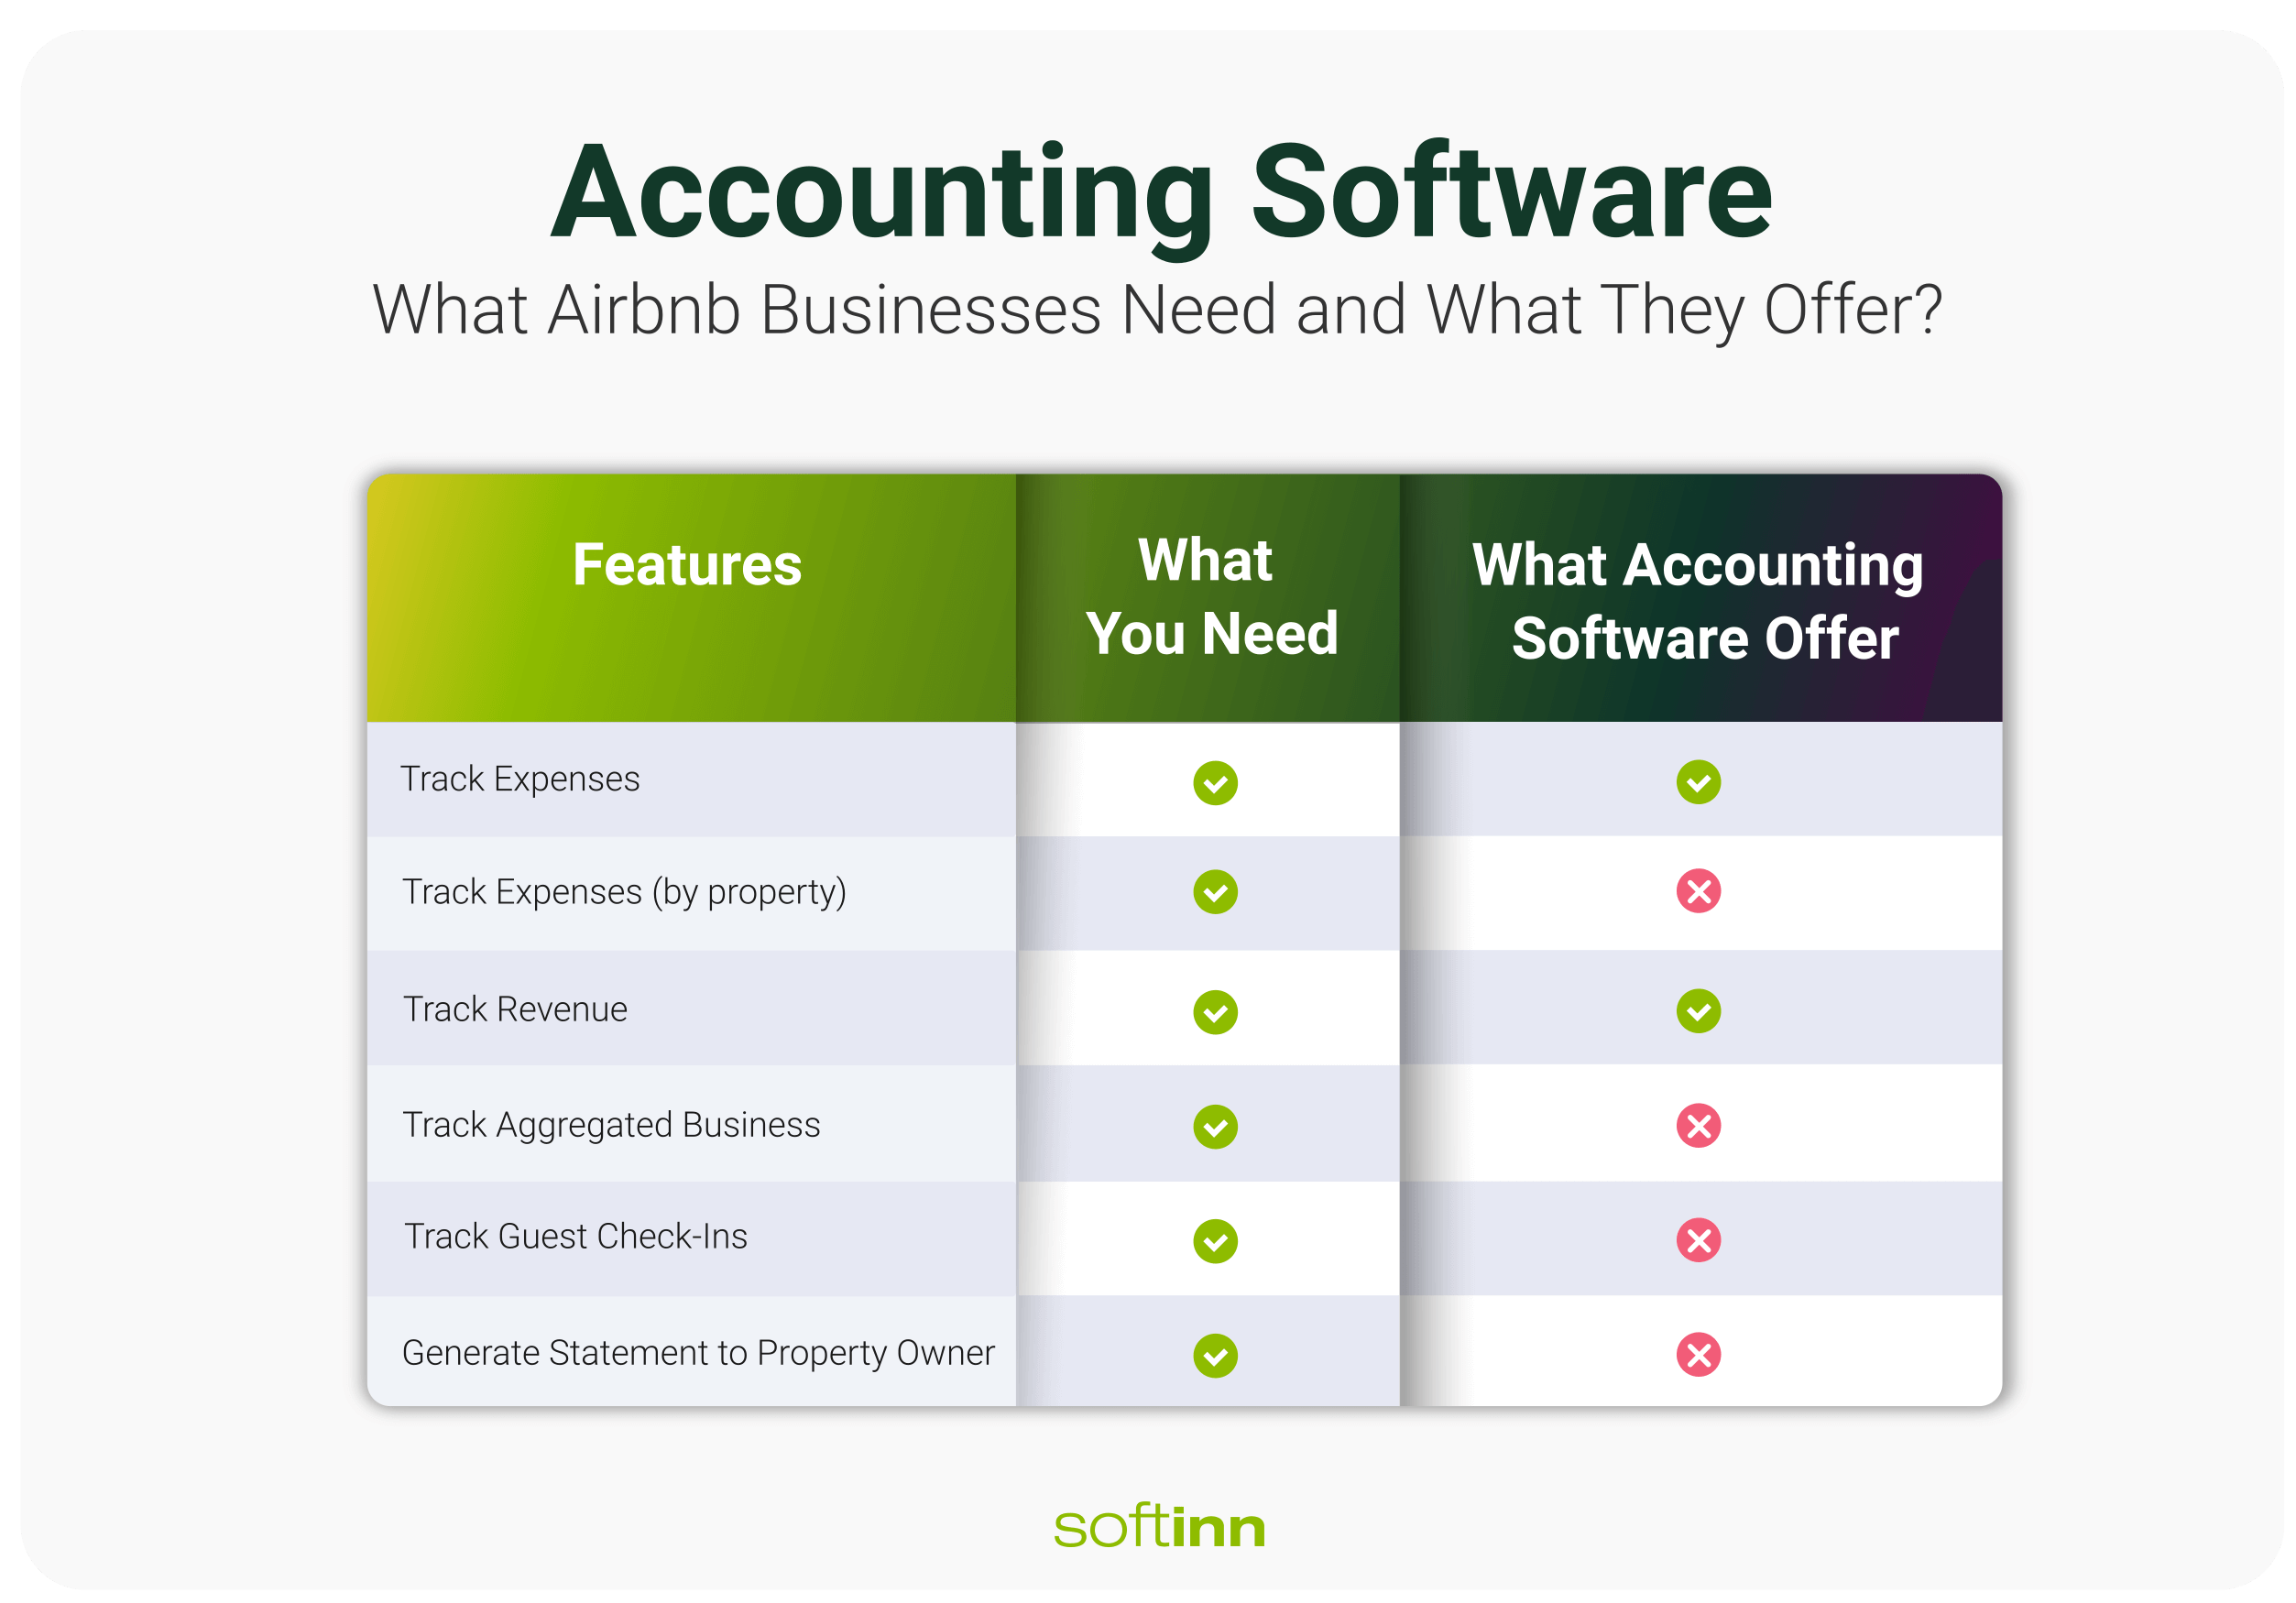 Table comparing features that are not available on accounting software but need by the host T2